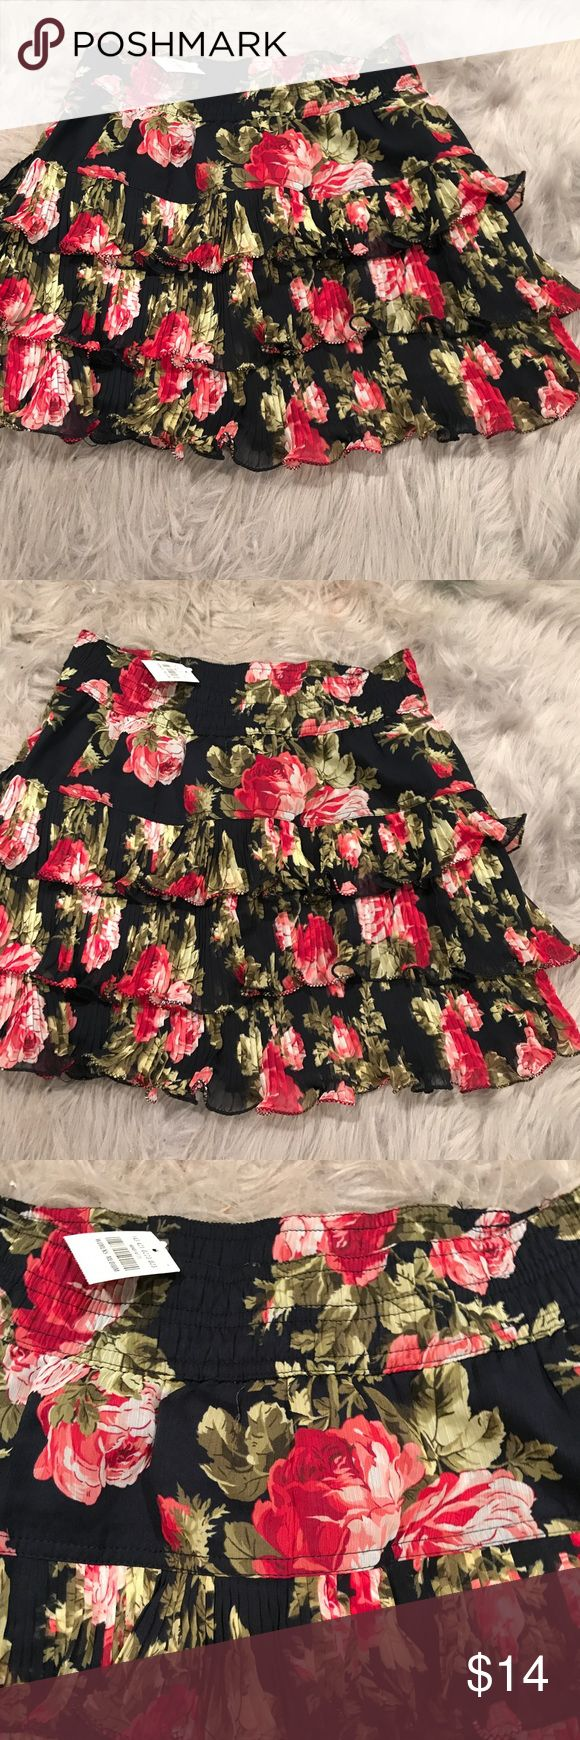 Abercrombie and fitch skirt New with tags rosette print tiered skirt from Abercrombie and Fitch. Great for fall with tights and boots, or with sandals for a casual look. Abercrombie & Fitch Skirts